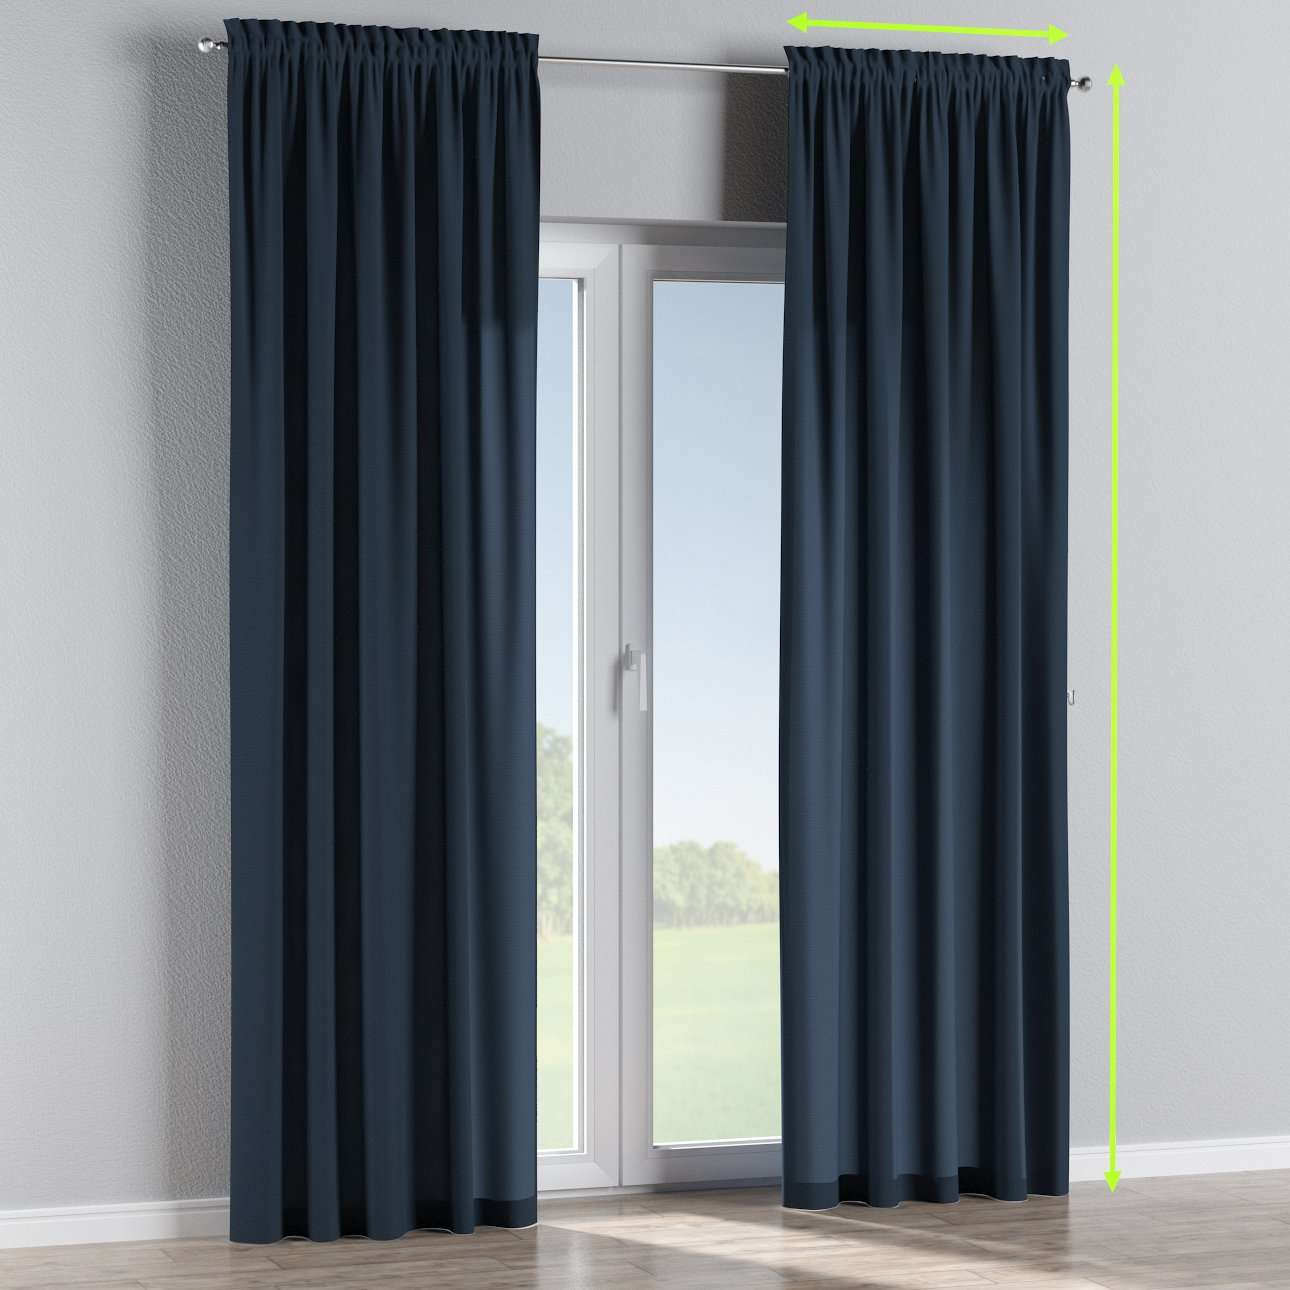 Slot and frill curtains in collection Quadro, fabric: 136-04